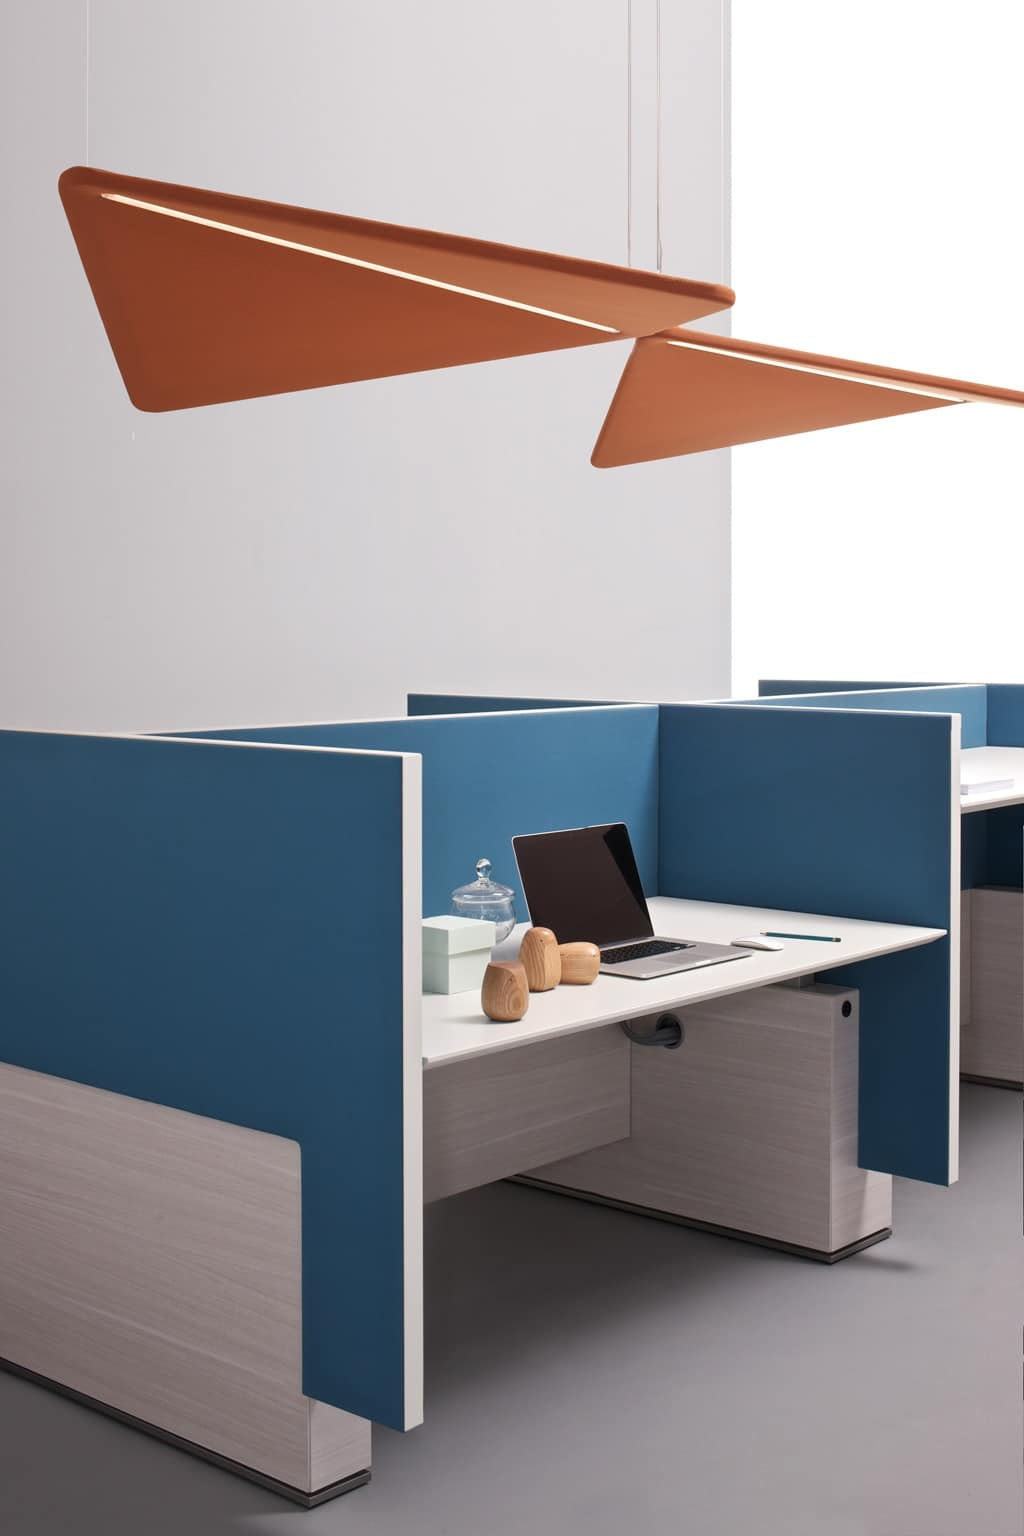 Kite, Sound Absorbing Panels For Offices And Meeting Rooms